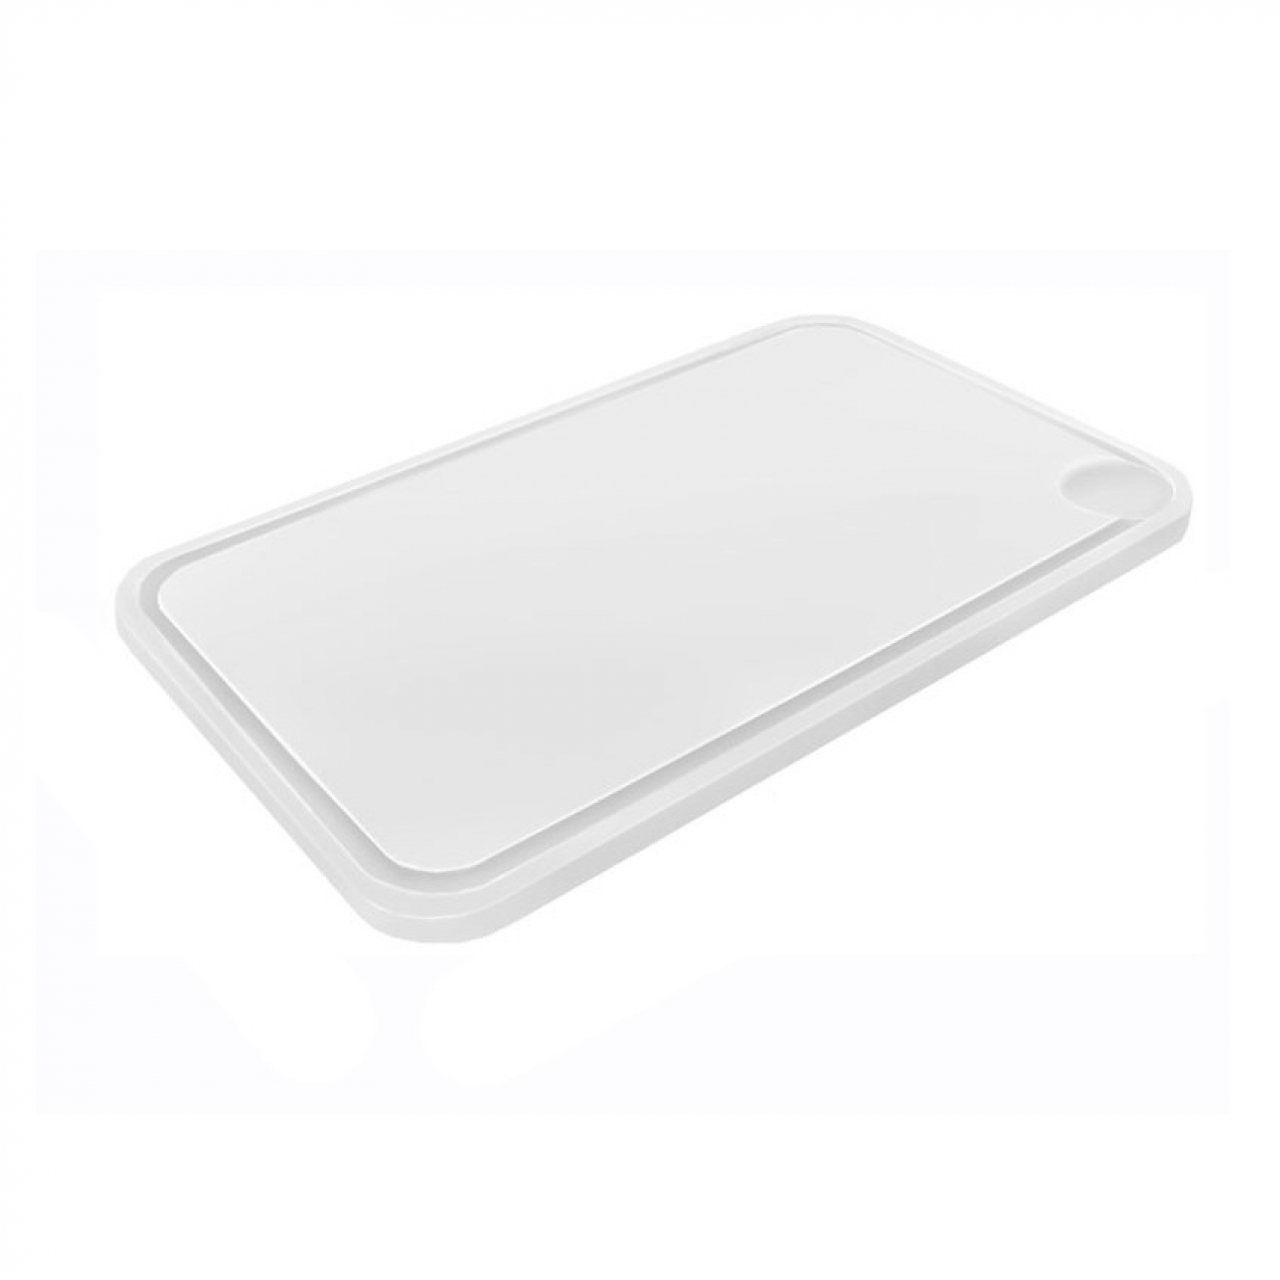 Cutting board with groove 40x60cm white